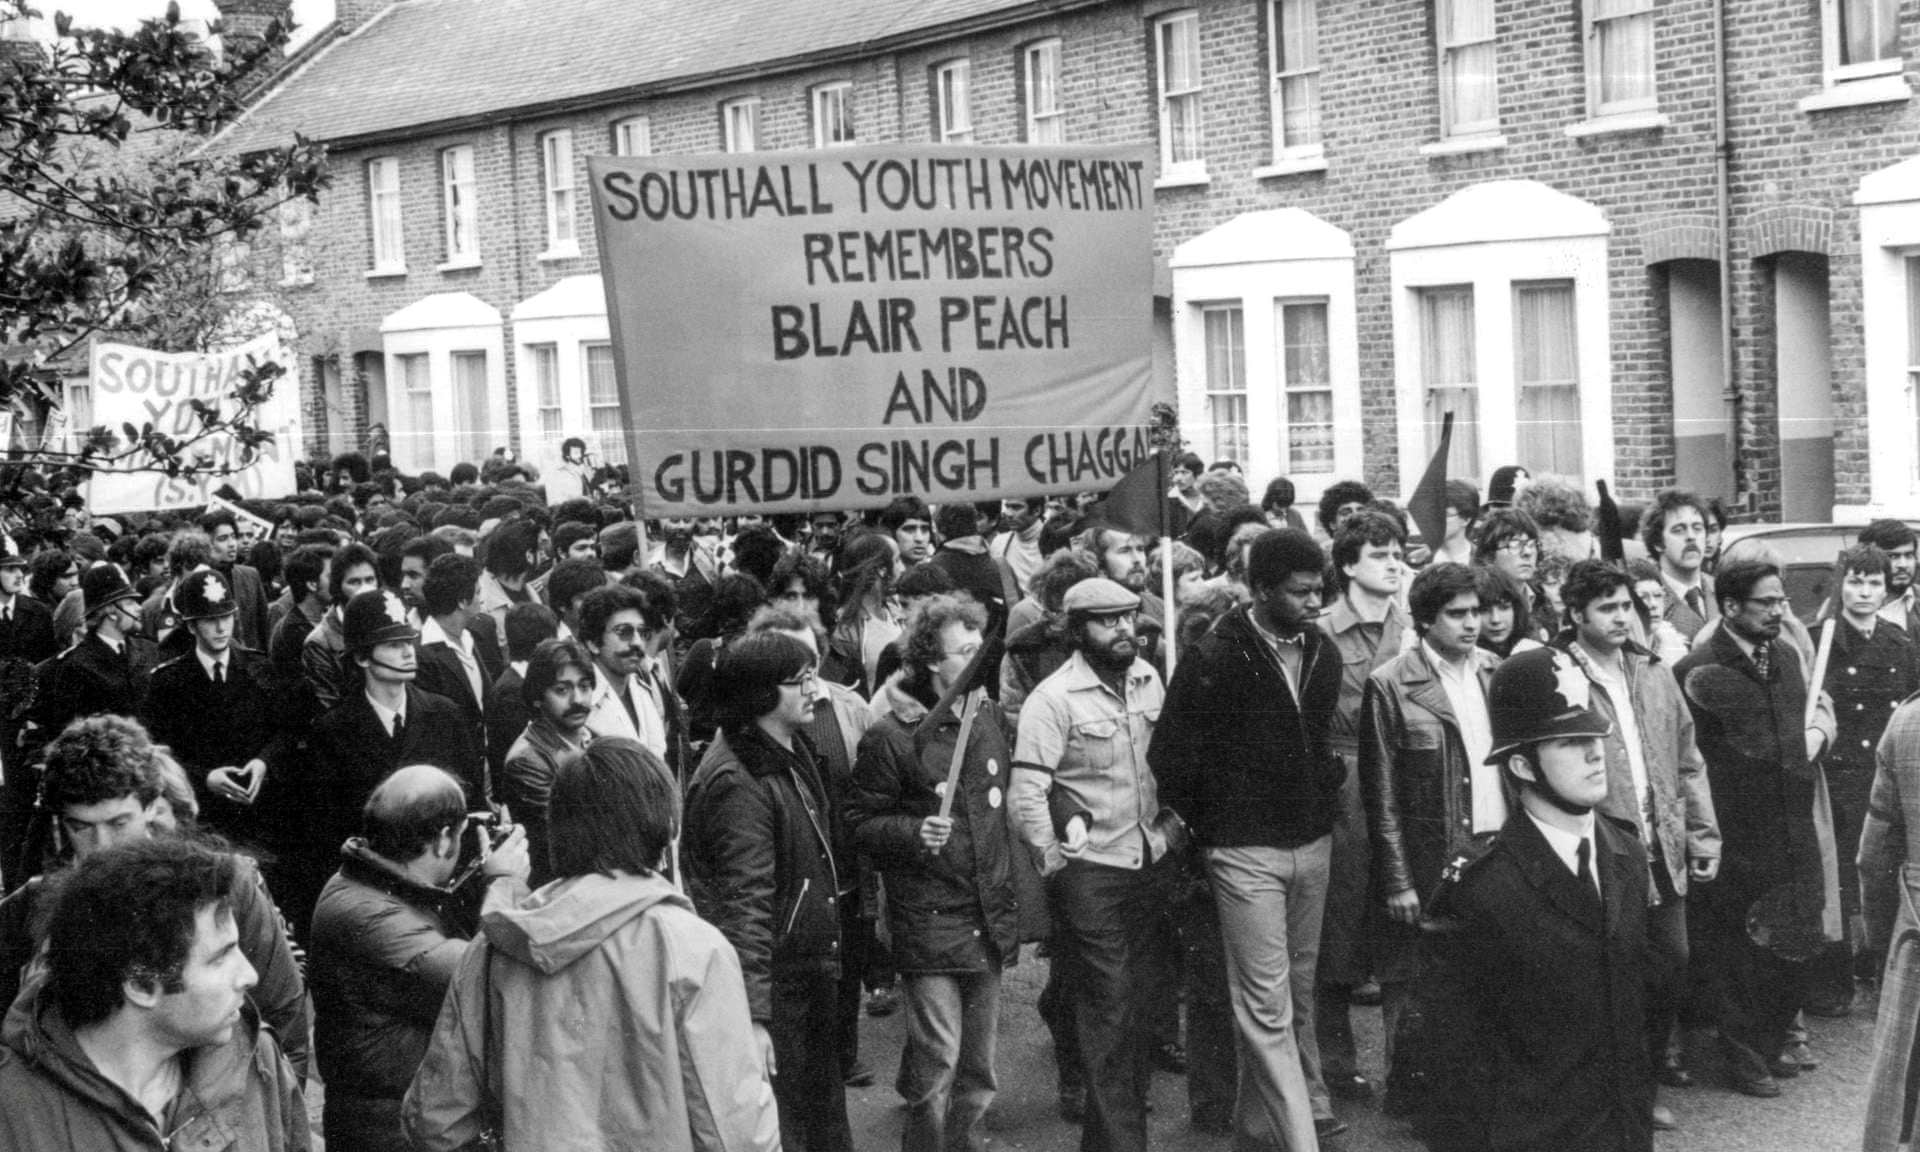 The Southall Youth Movement (SYM) leads a march remembering the deaths of Blair Peach and Gurdip Singh Chaggar. SYM became the first of a number of South Asian youth organizations that decided to fight racism on the streets of Britain. Image:    Monitoring Group via Al Jazeera